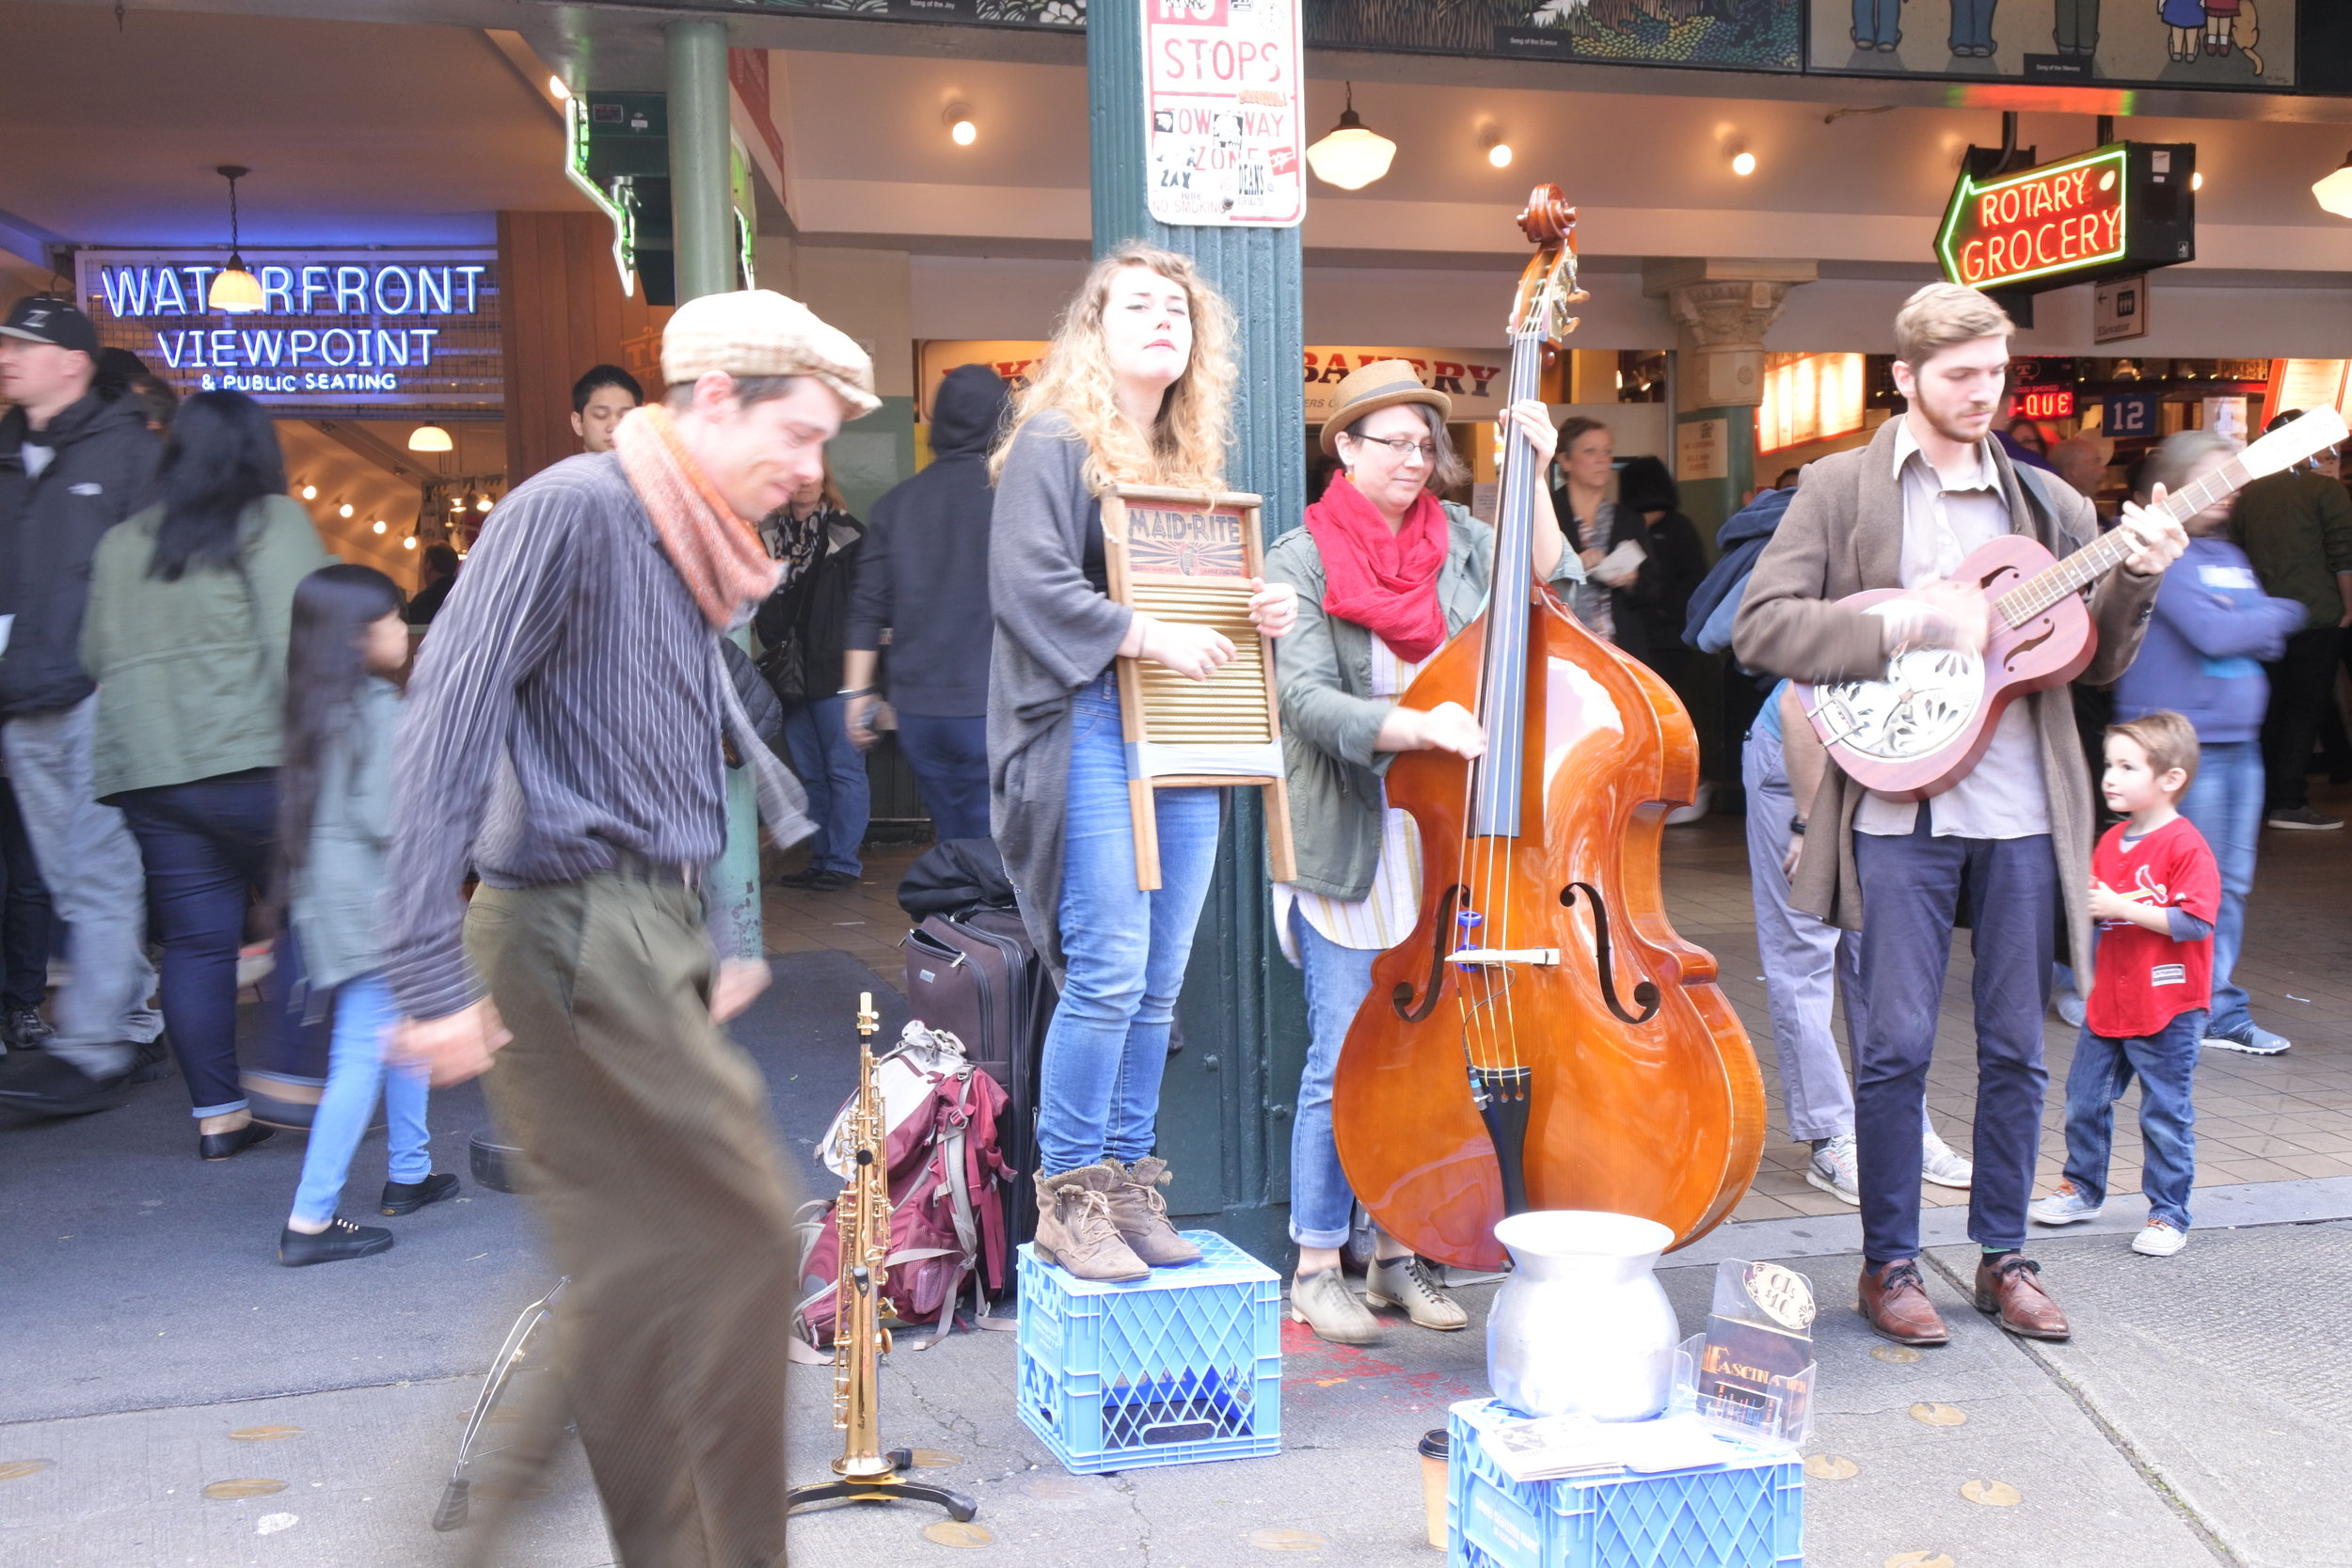 Irish street buskers entertaining the crowd